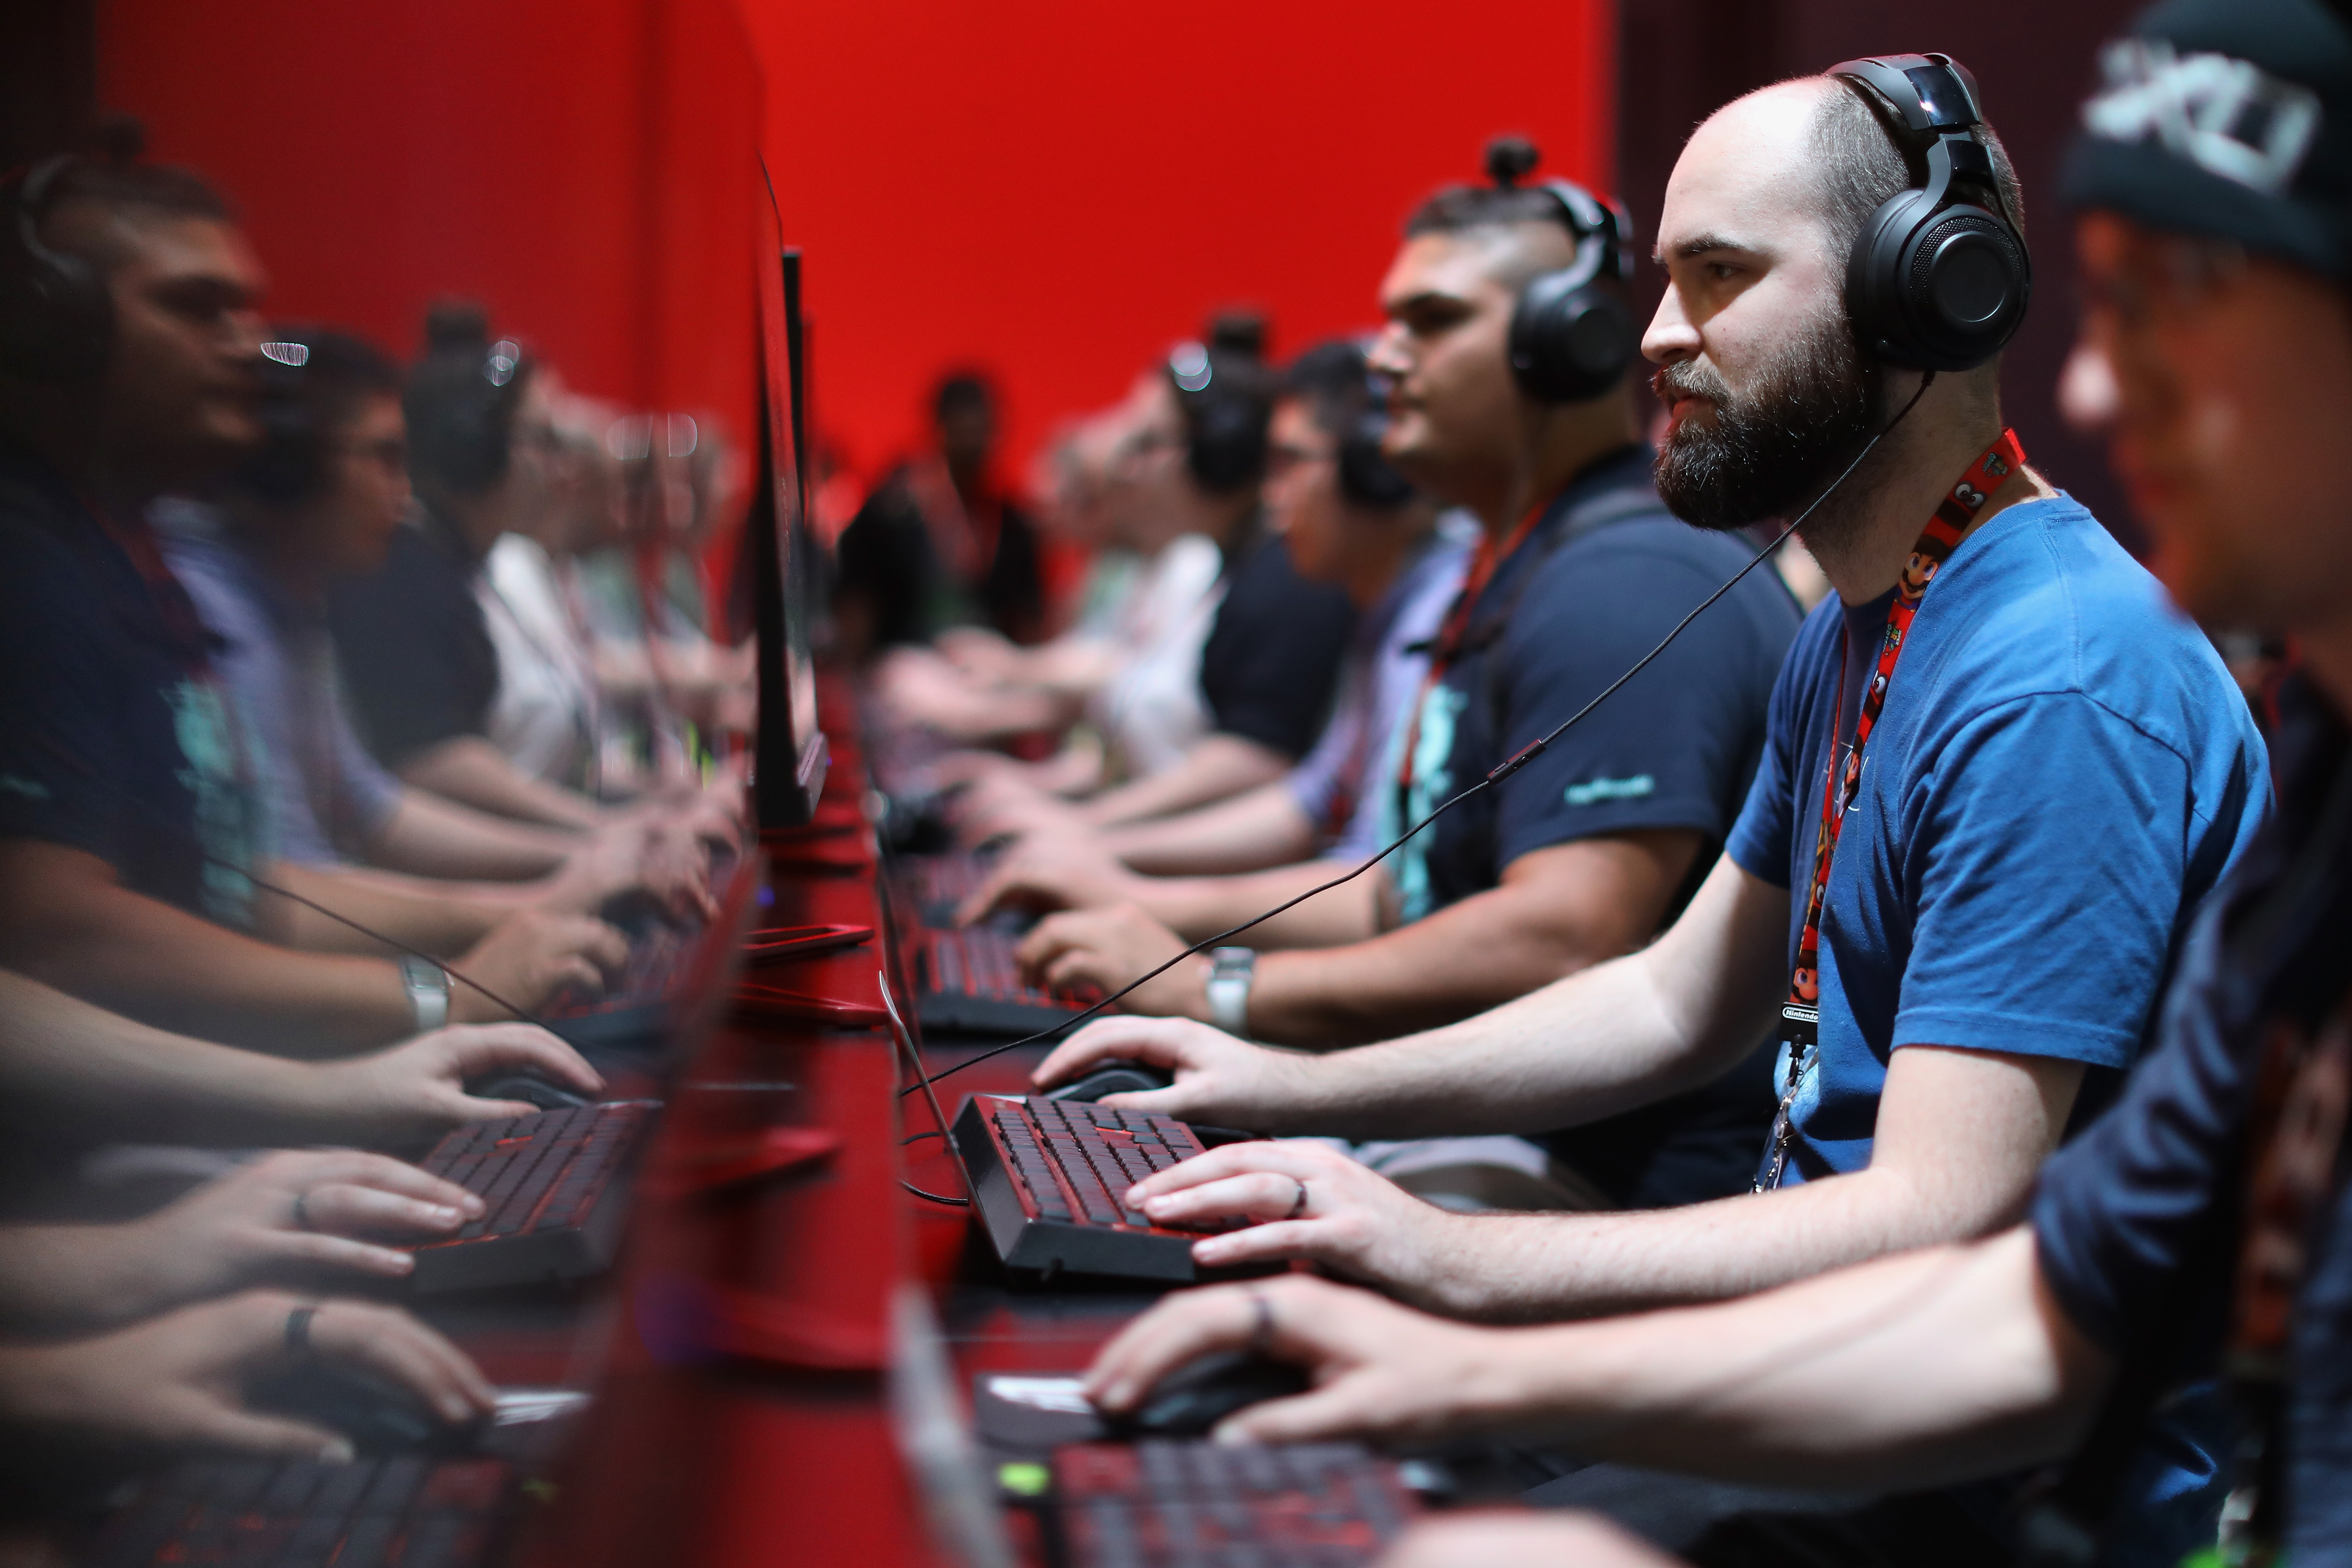 Annual E3 Gaming Industry Conference Held In Los Angeles